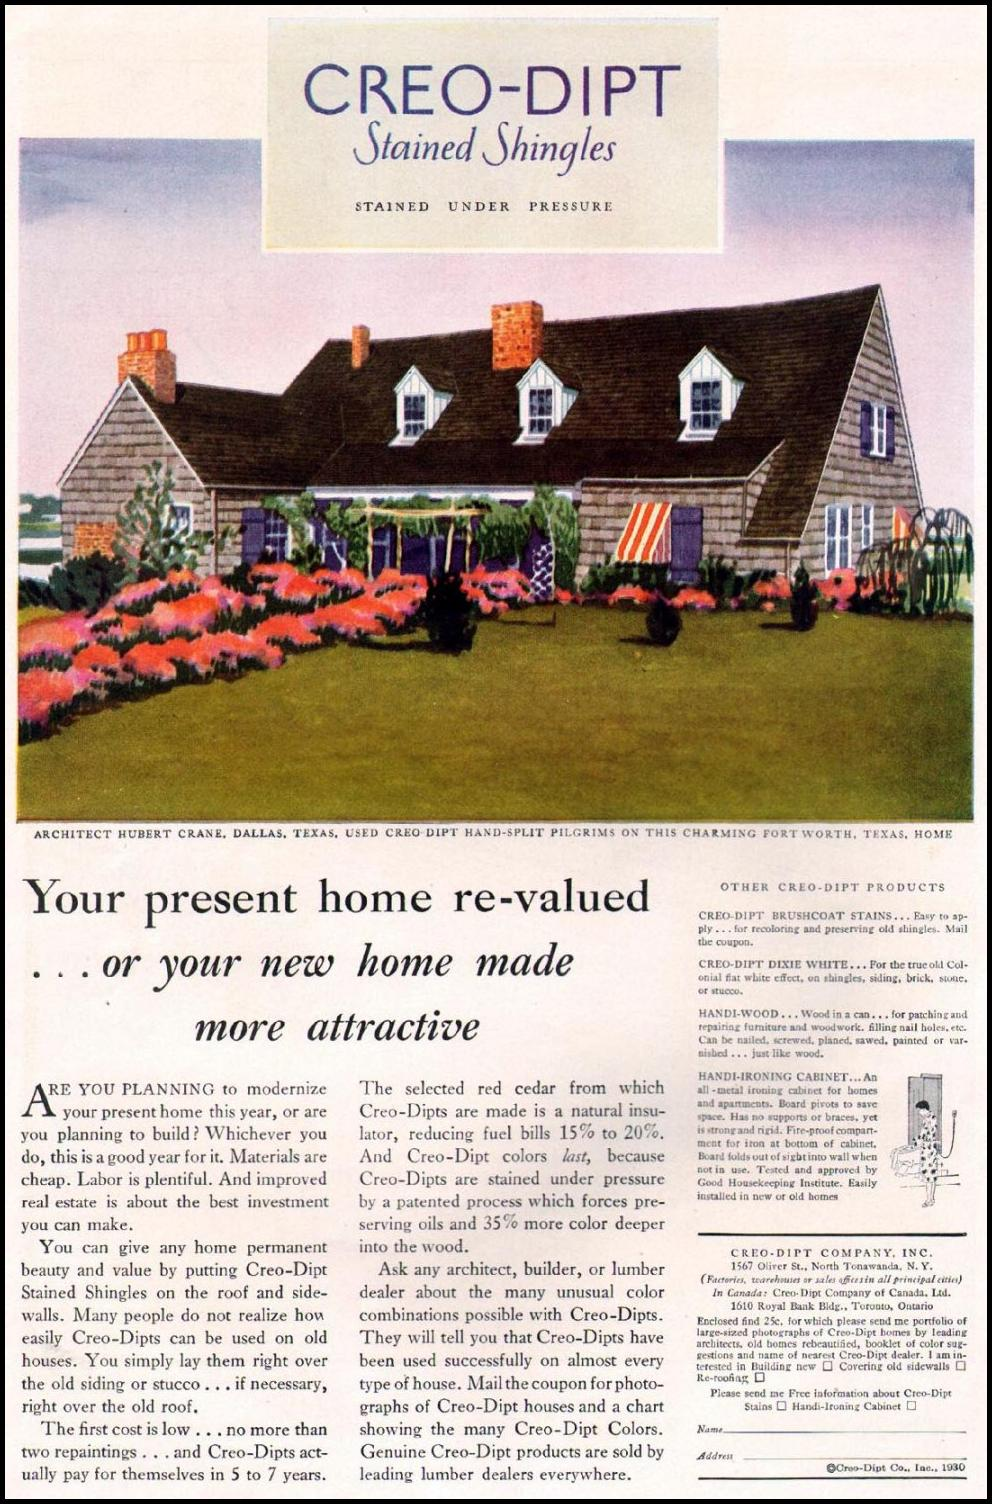 CREO-DIPT STAINED SHINGLES